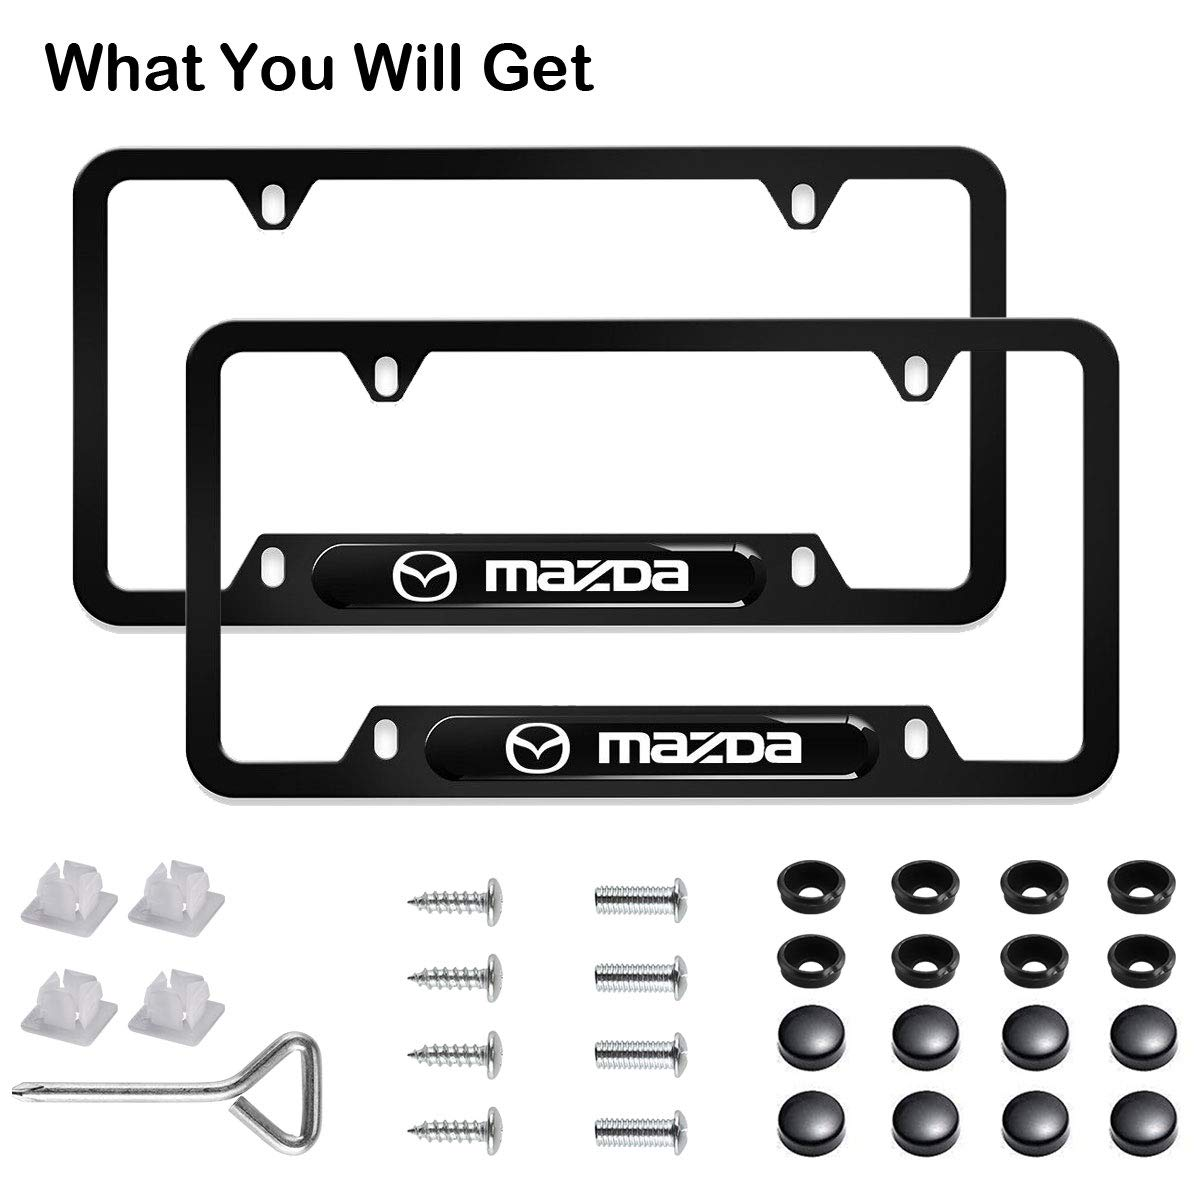 Matte Black Aluminum Alloy License Plate Frame Matching with Screw Cover Set 2PCS License Plate Frames